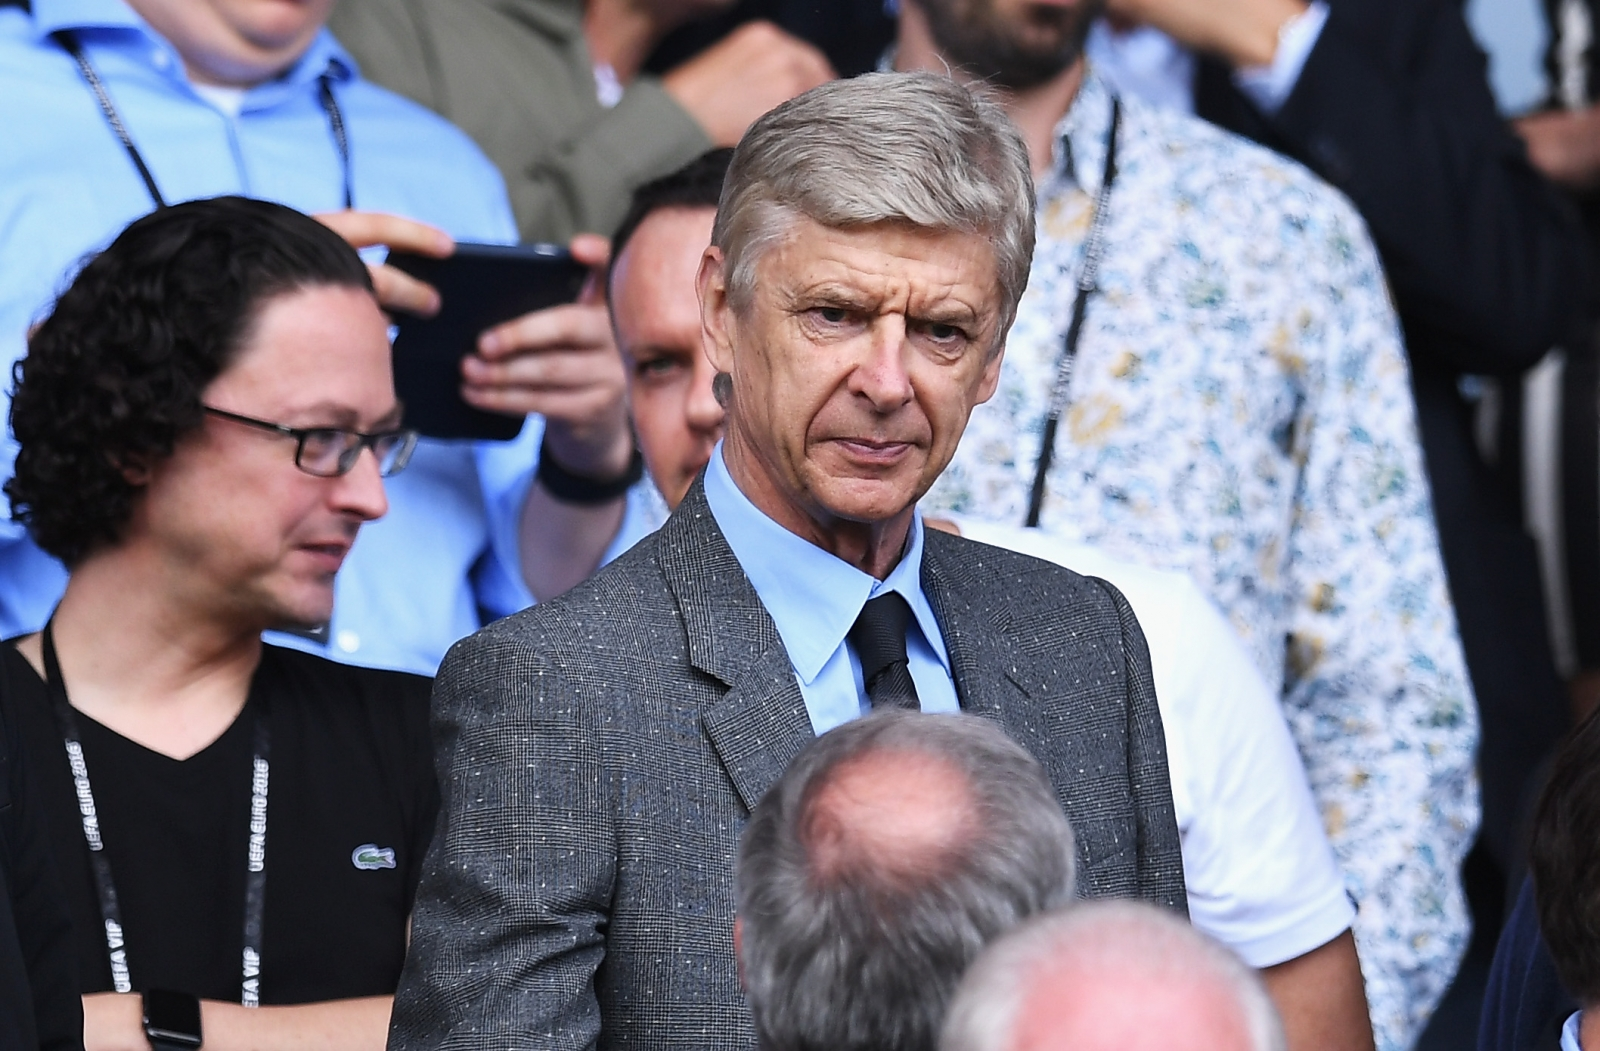 Arsenal FC Hopeful Wenger Will Stay Put Despite England Pursuit